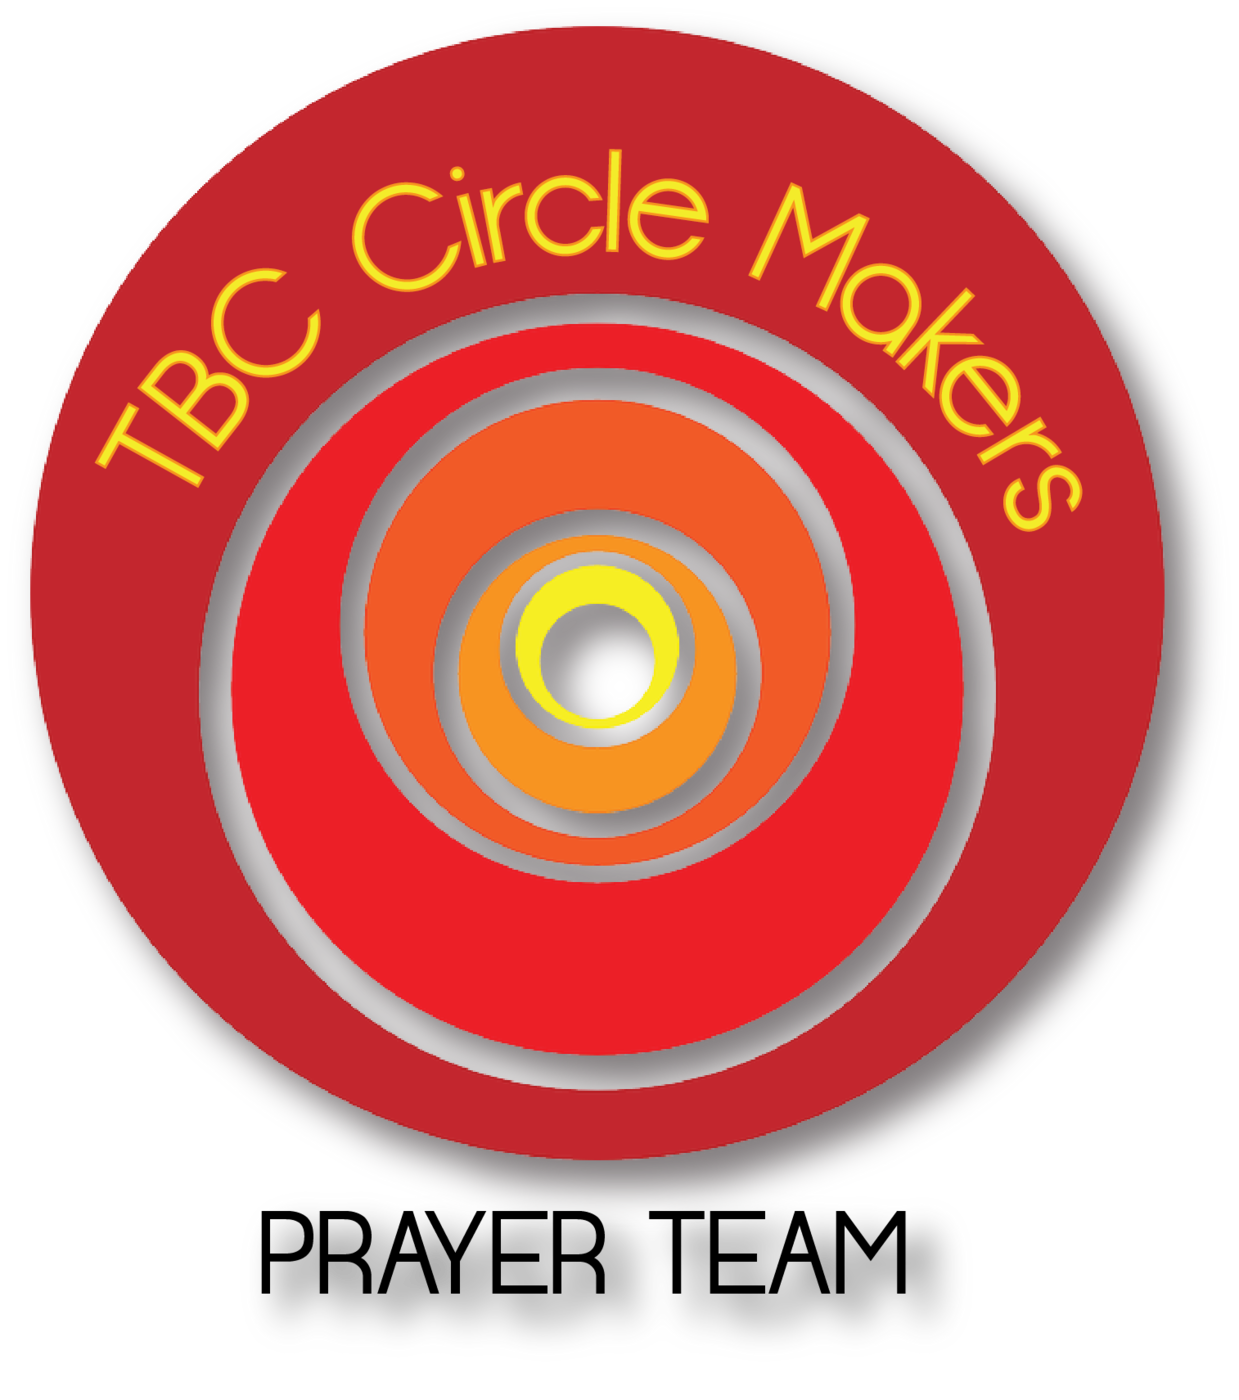 Circle Makers LOGO 15